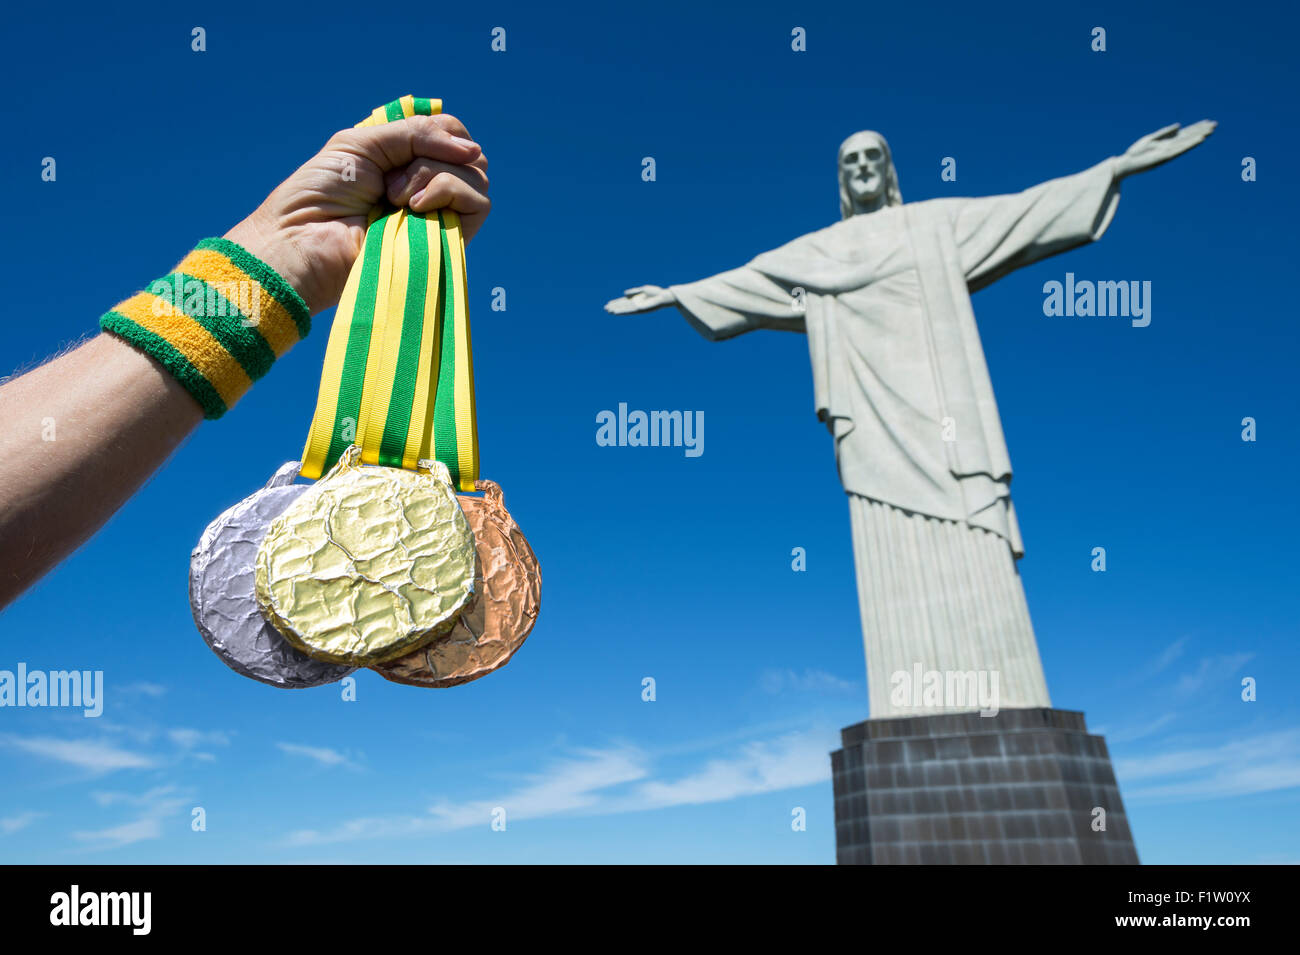 RIO DE JANEIRO, BRAZIL - MARCH 05, 2015: Hand holds gold medals hanging from Brazil color ribbons in clear blue - Stock Image